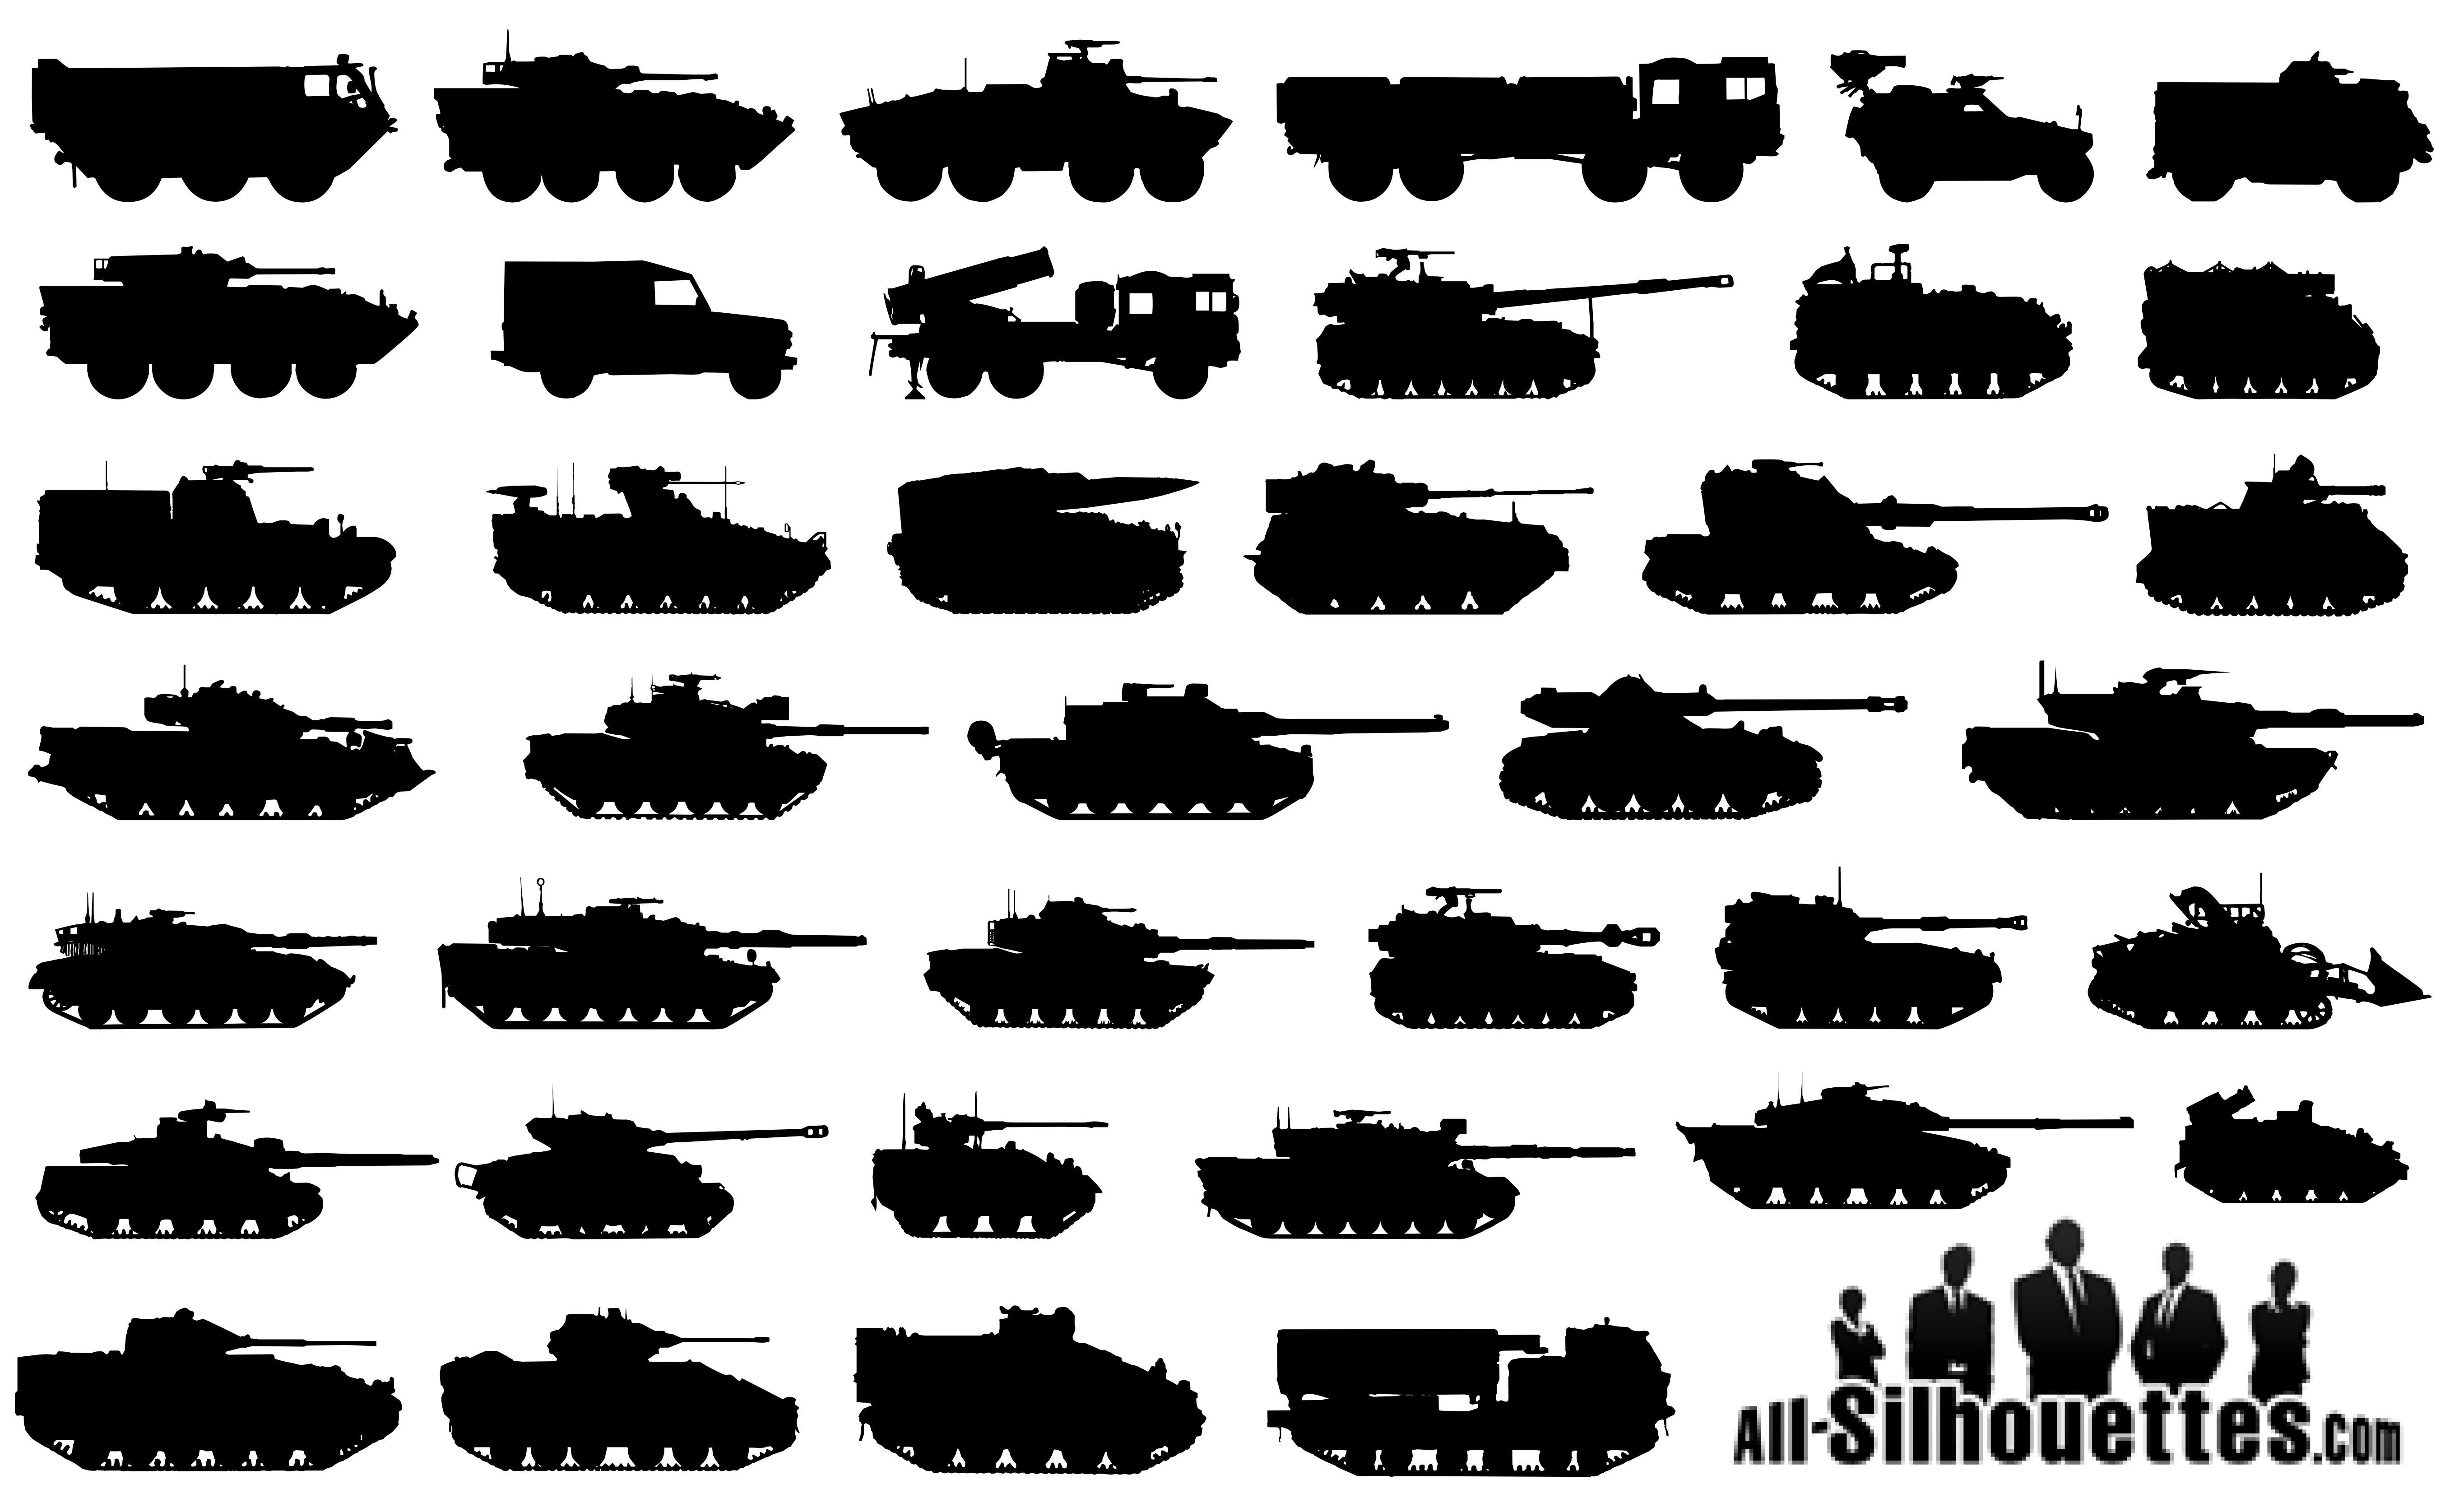 40 Military Tanks Silhouettes | icons | Pinterest ...